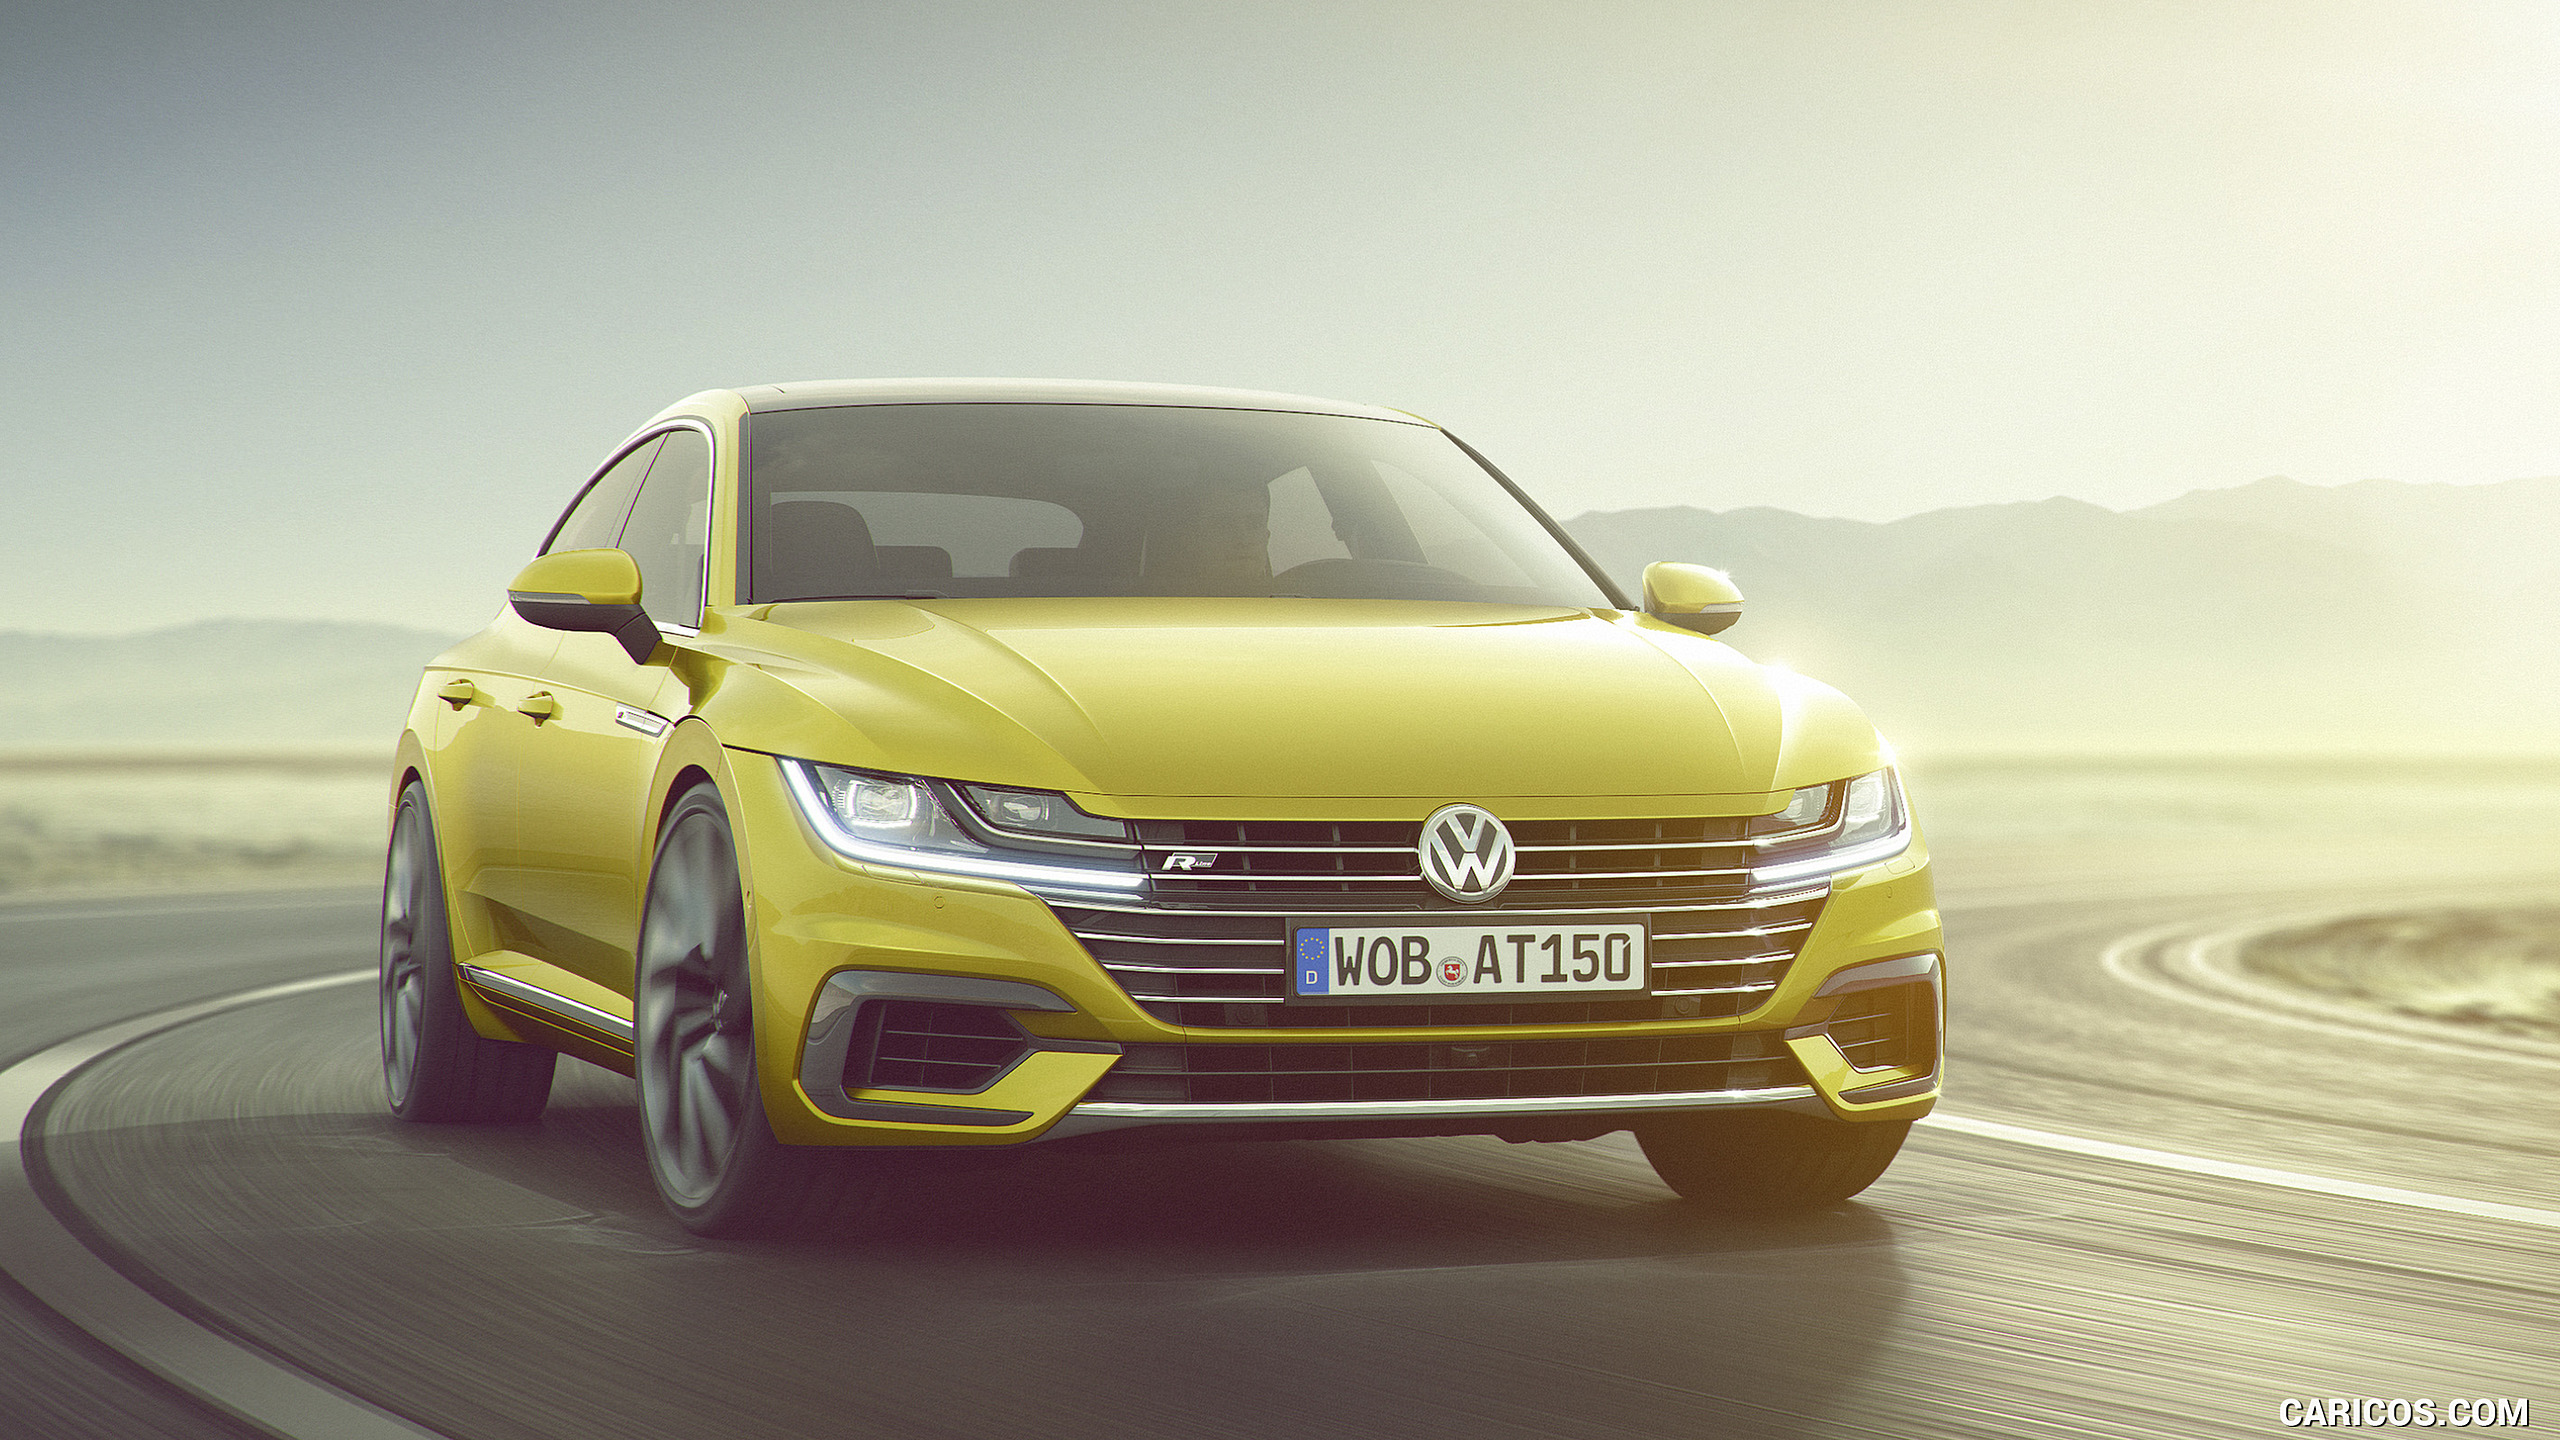 2560x1440 - Volkswagen Arteon Wallpapers 20